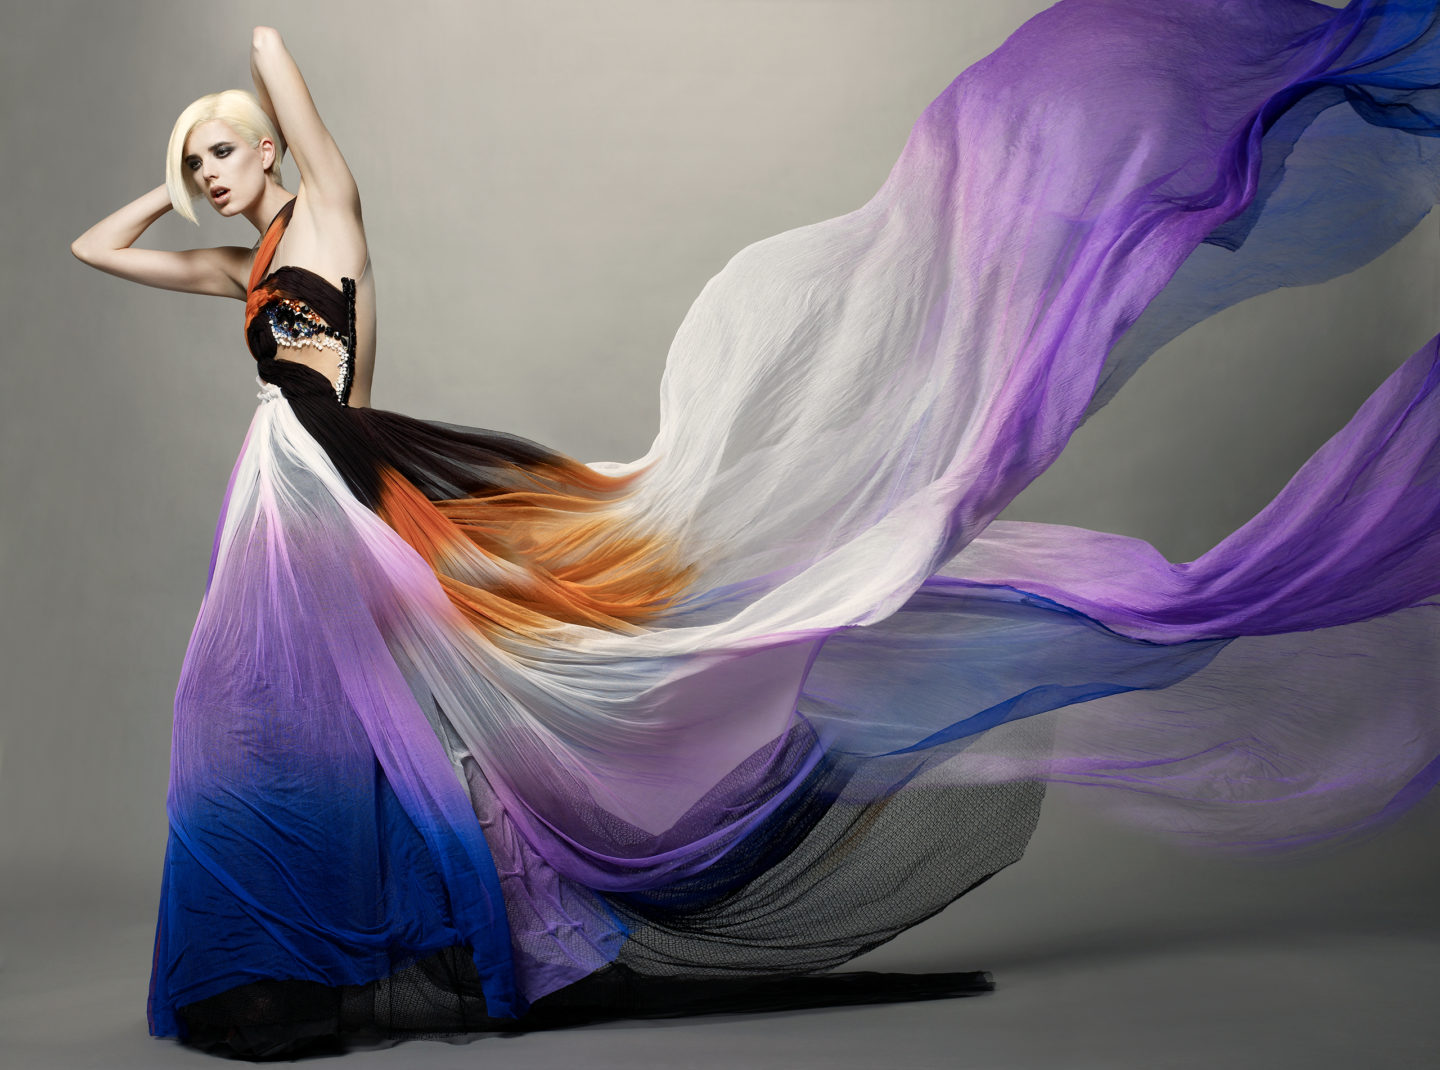 Model with light skin and platinum blond hair poses with hands behind her head wearing a long dress with shades of blue, purple, and orange. Train of dress dramatically flows off the right and top edge of the frame.